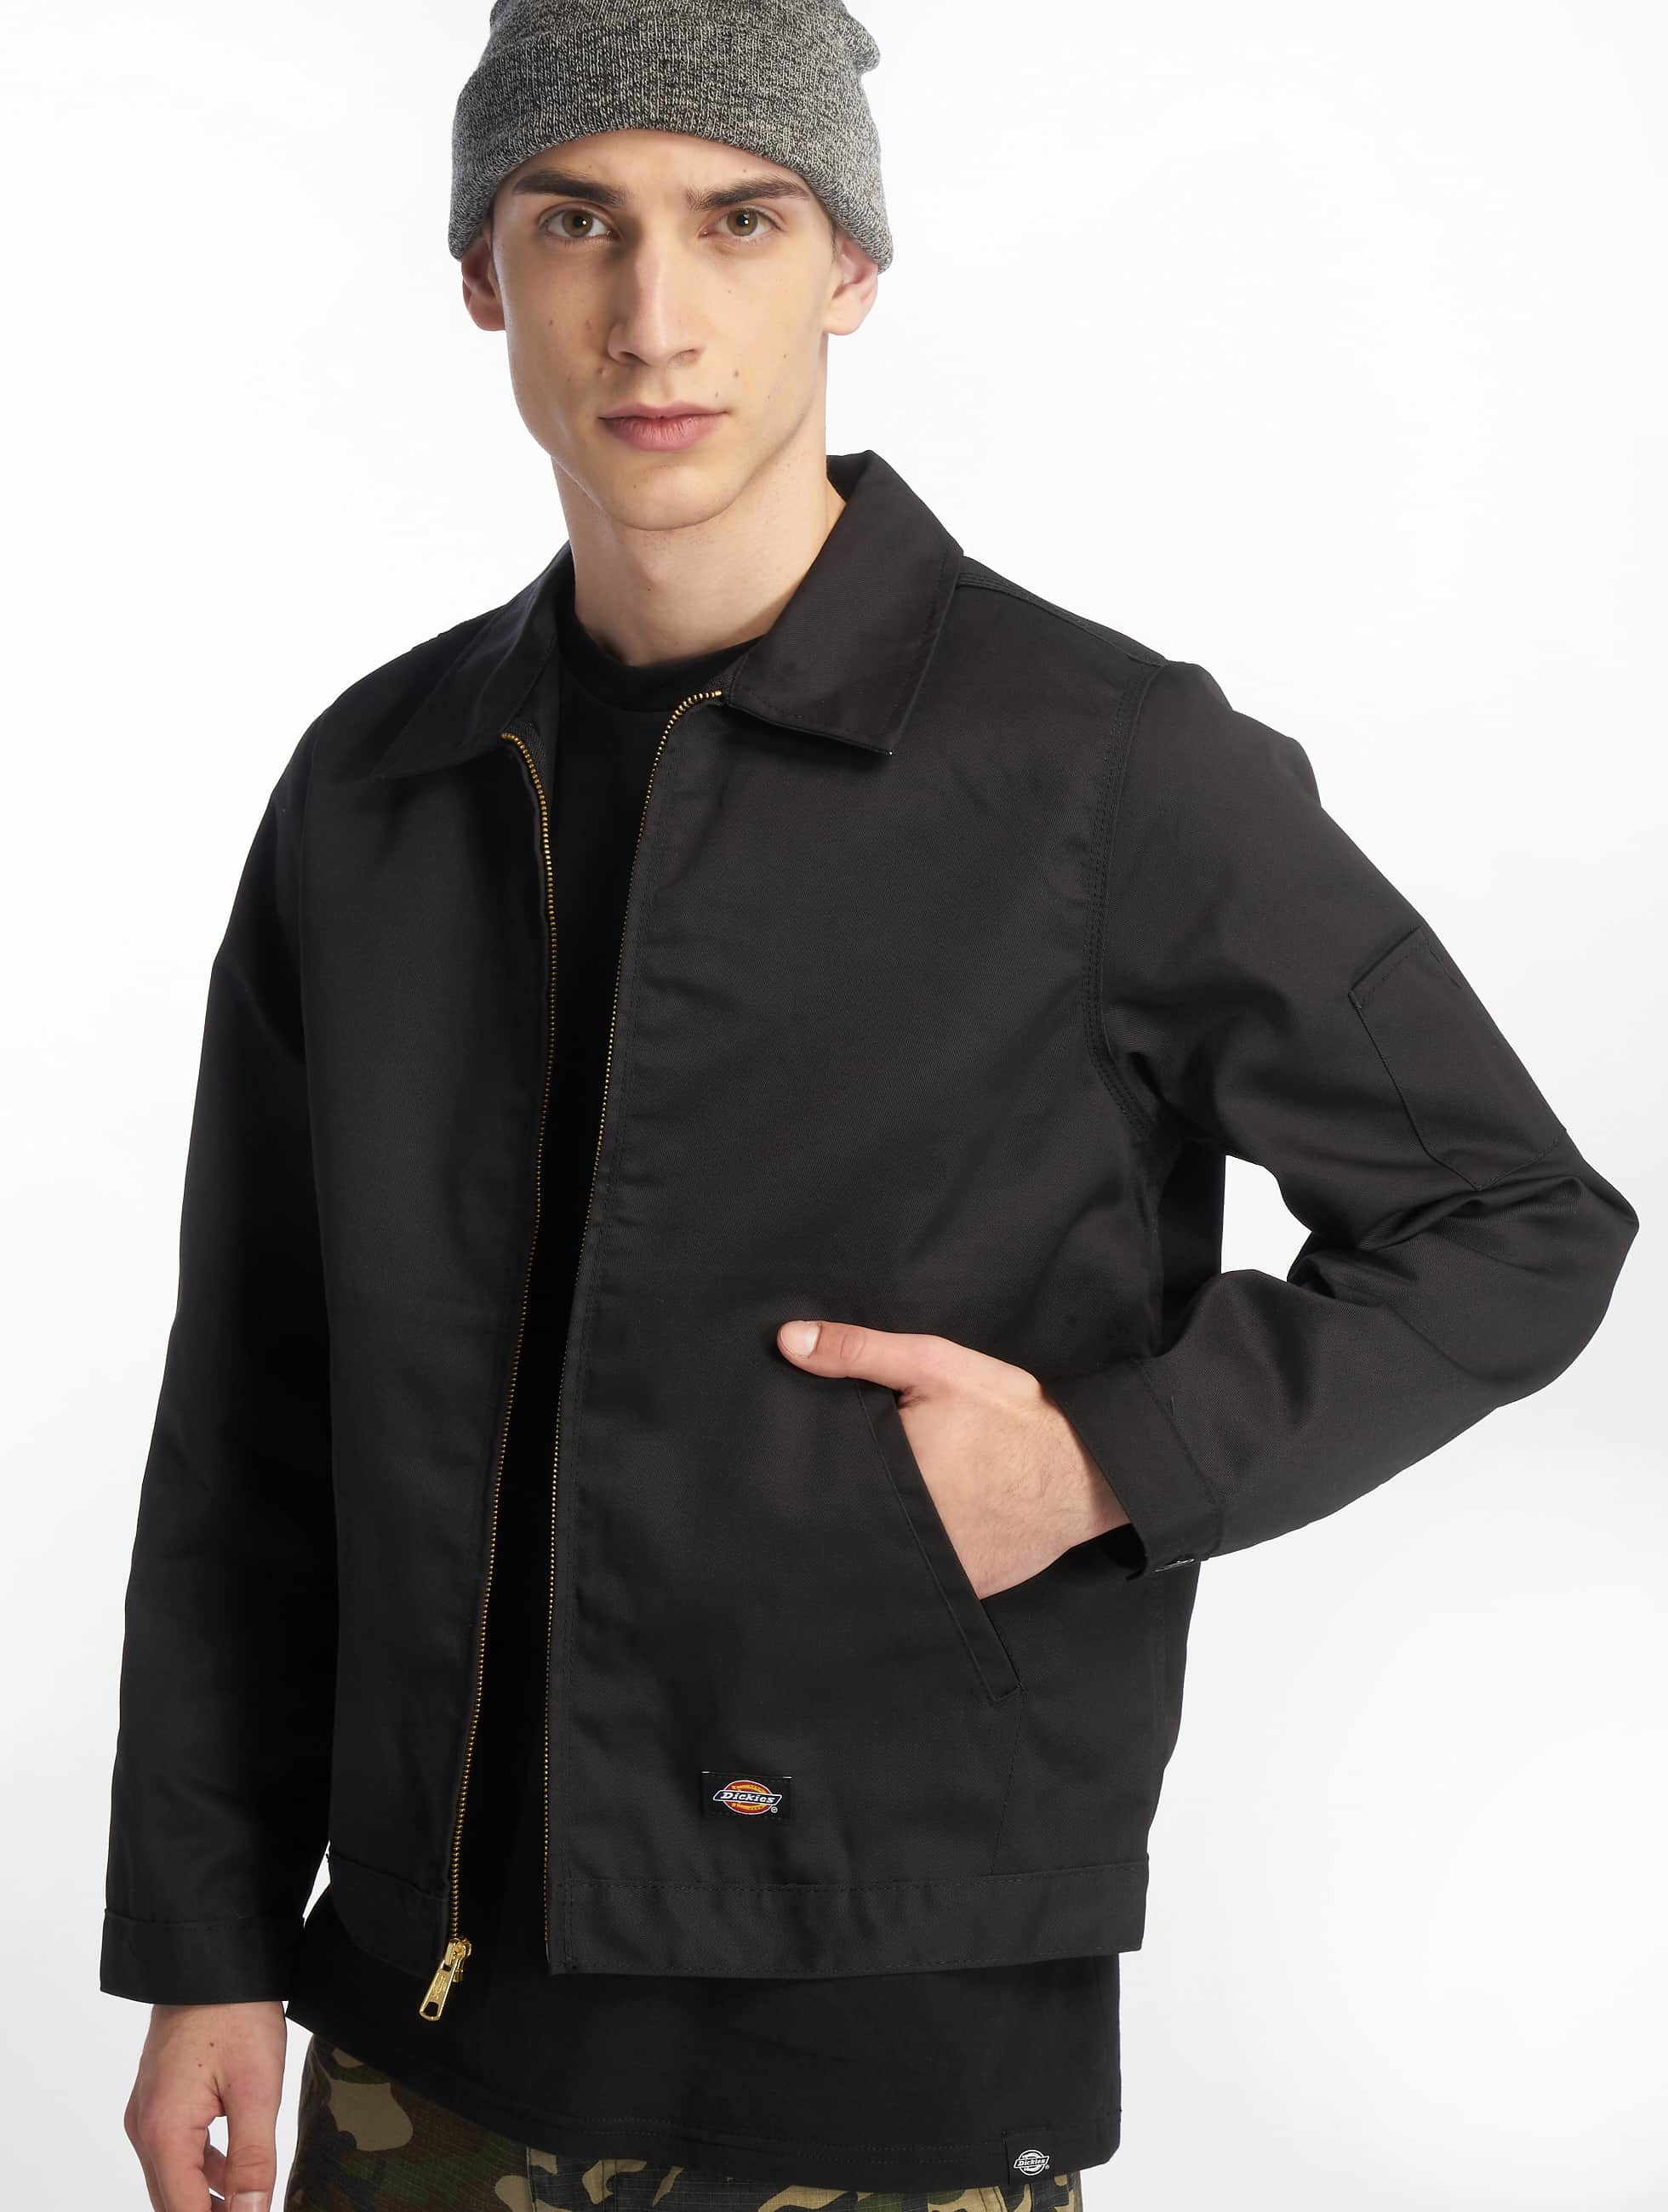 dickies veste blouson veste demi saison unlined eisenhower en noir 45031. Black Bedroom Furniture Sets. Home Design Ideas